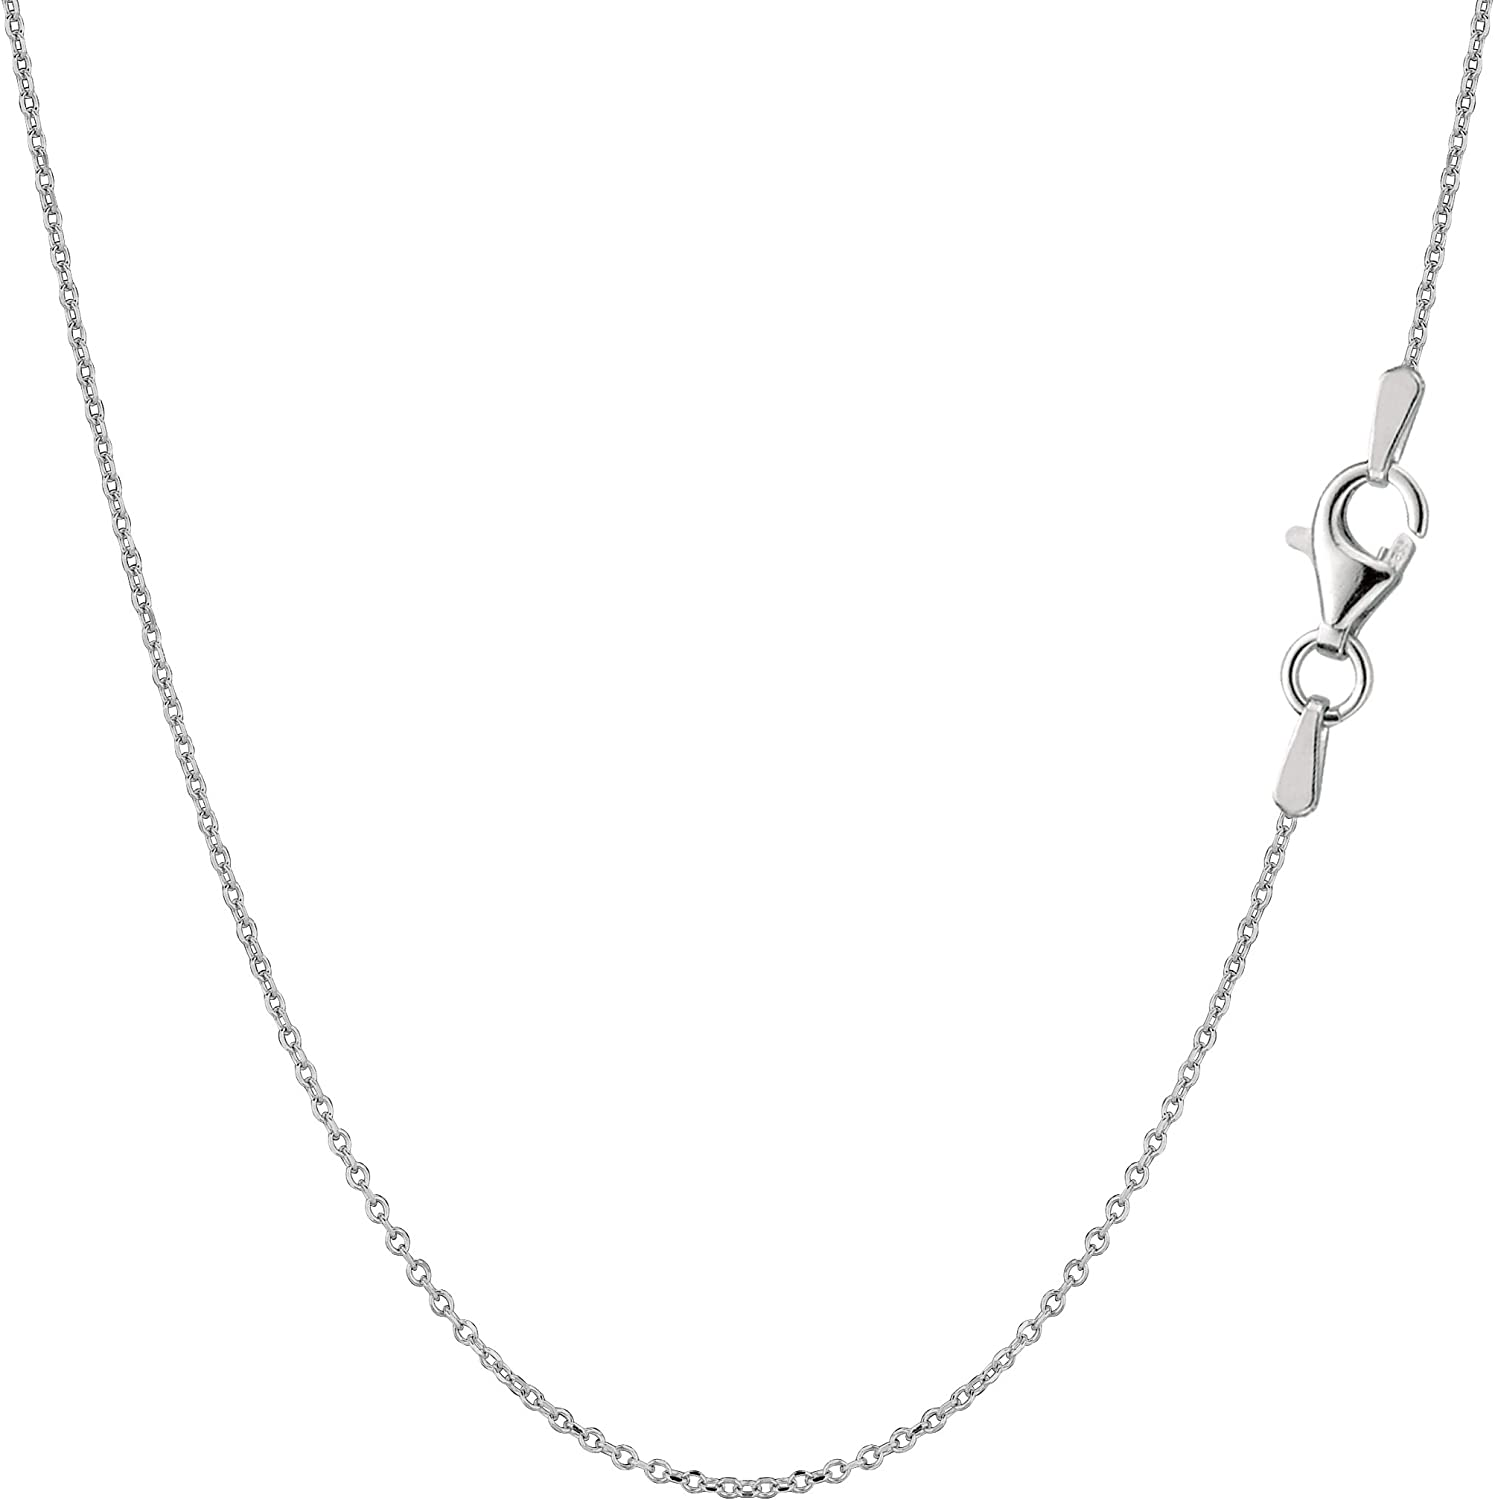 Amazon Com Sterling Silver Rhodium Plated Cable Chain Necklace 0 8mm 16 Chain Necklaces Jewelry